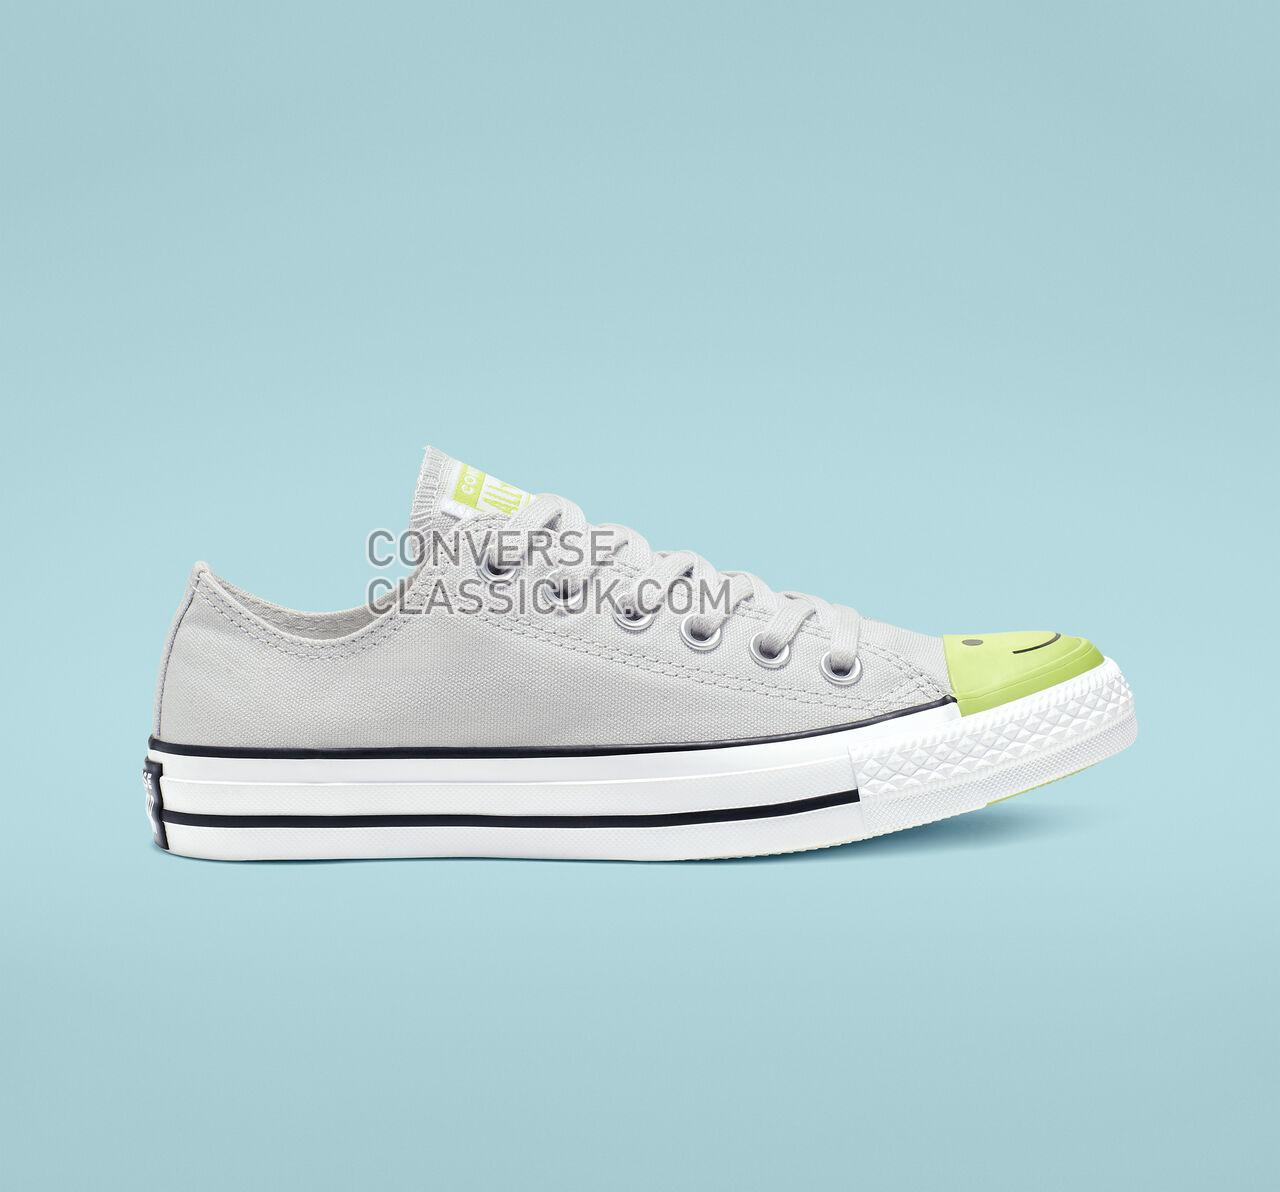 Converse Chuck Taylor All Star Carnival Colorblock Low Top Mens Womens Unisex 164424C Mouse/Bold Lime/White Shoes